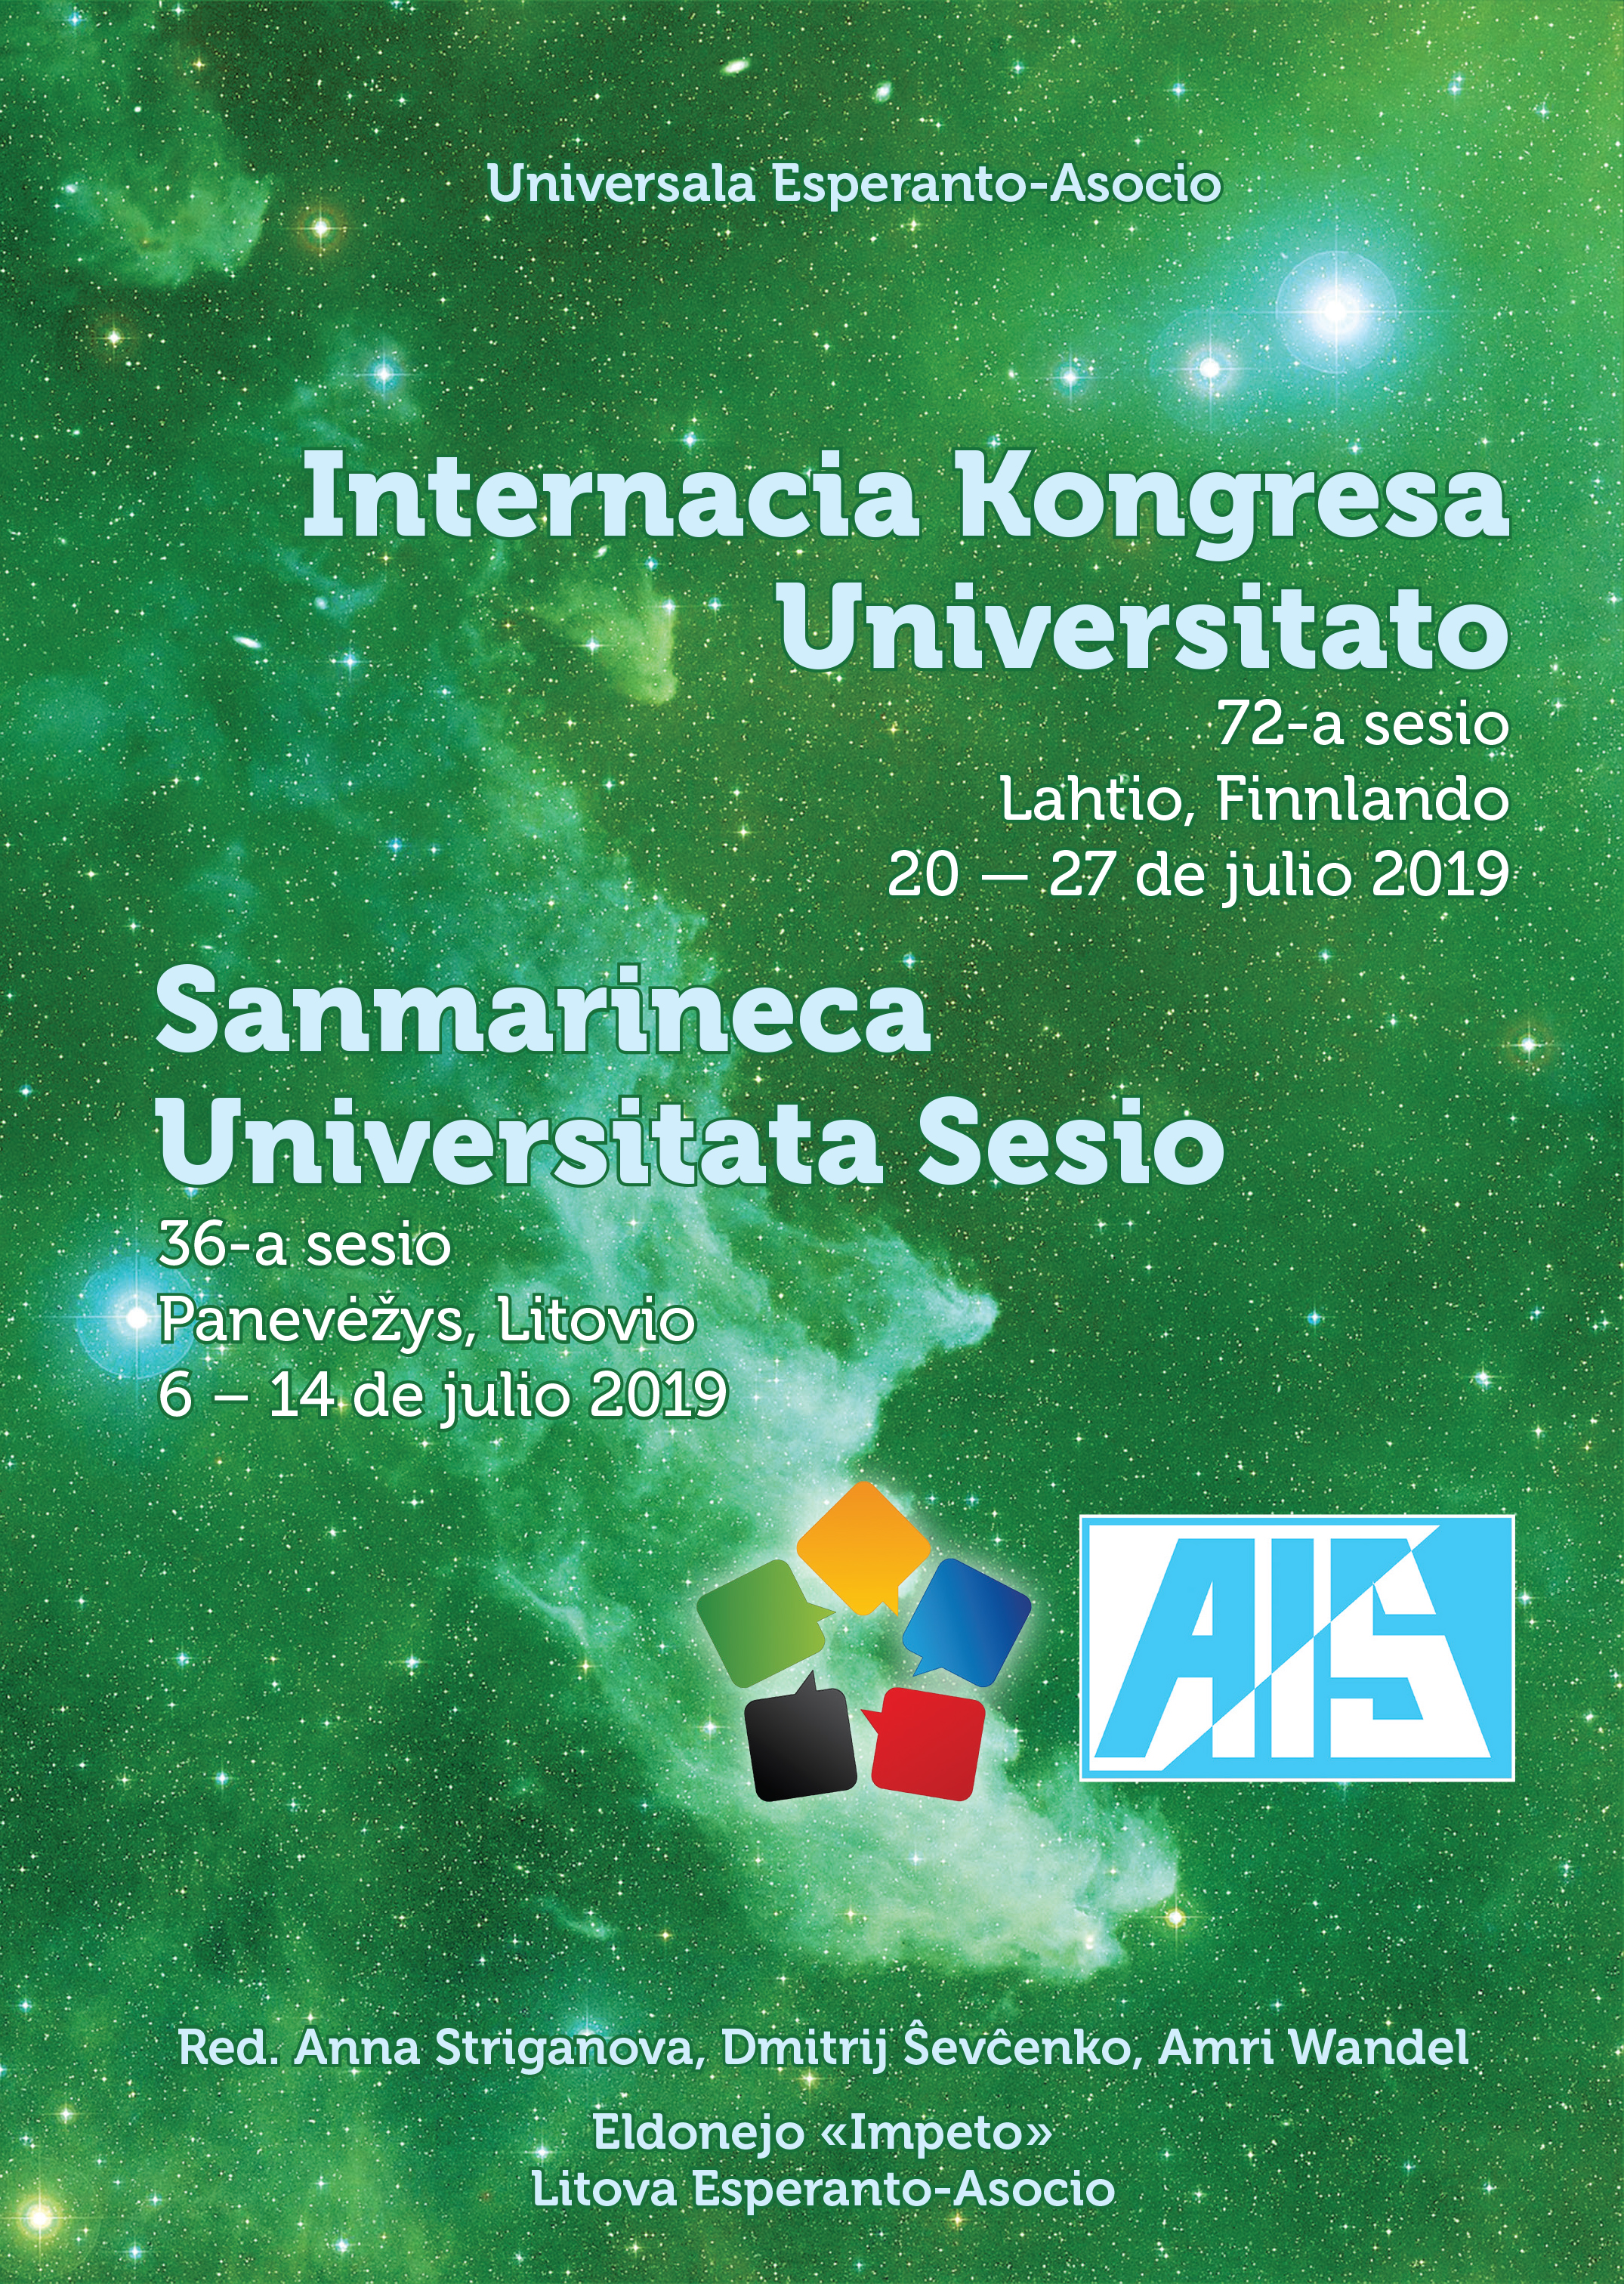 Internacia Kongresa Universitato